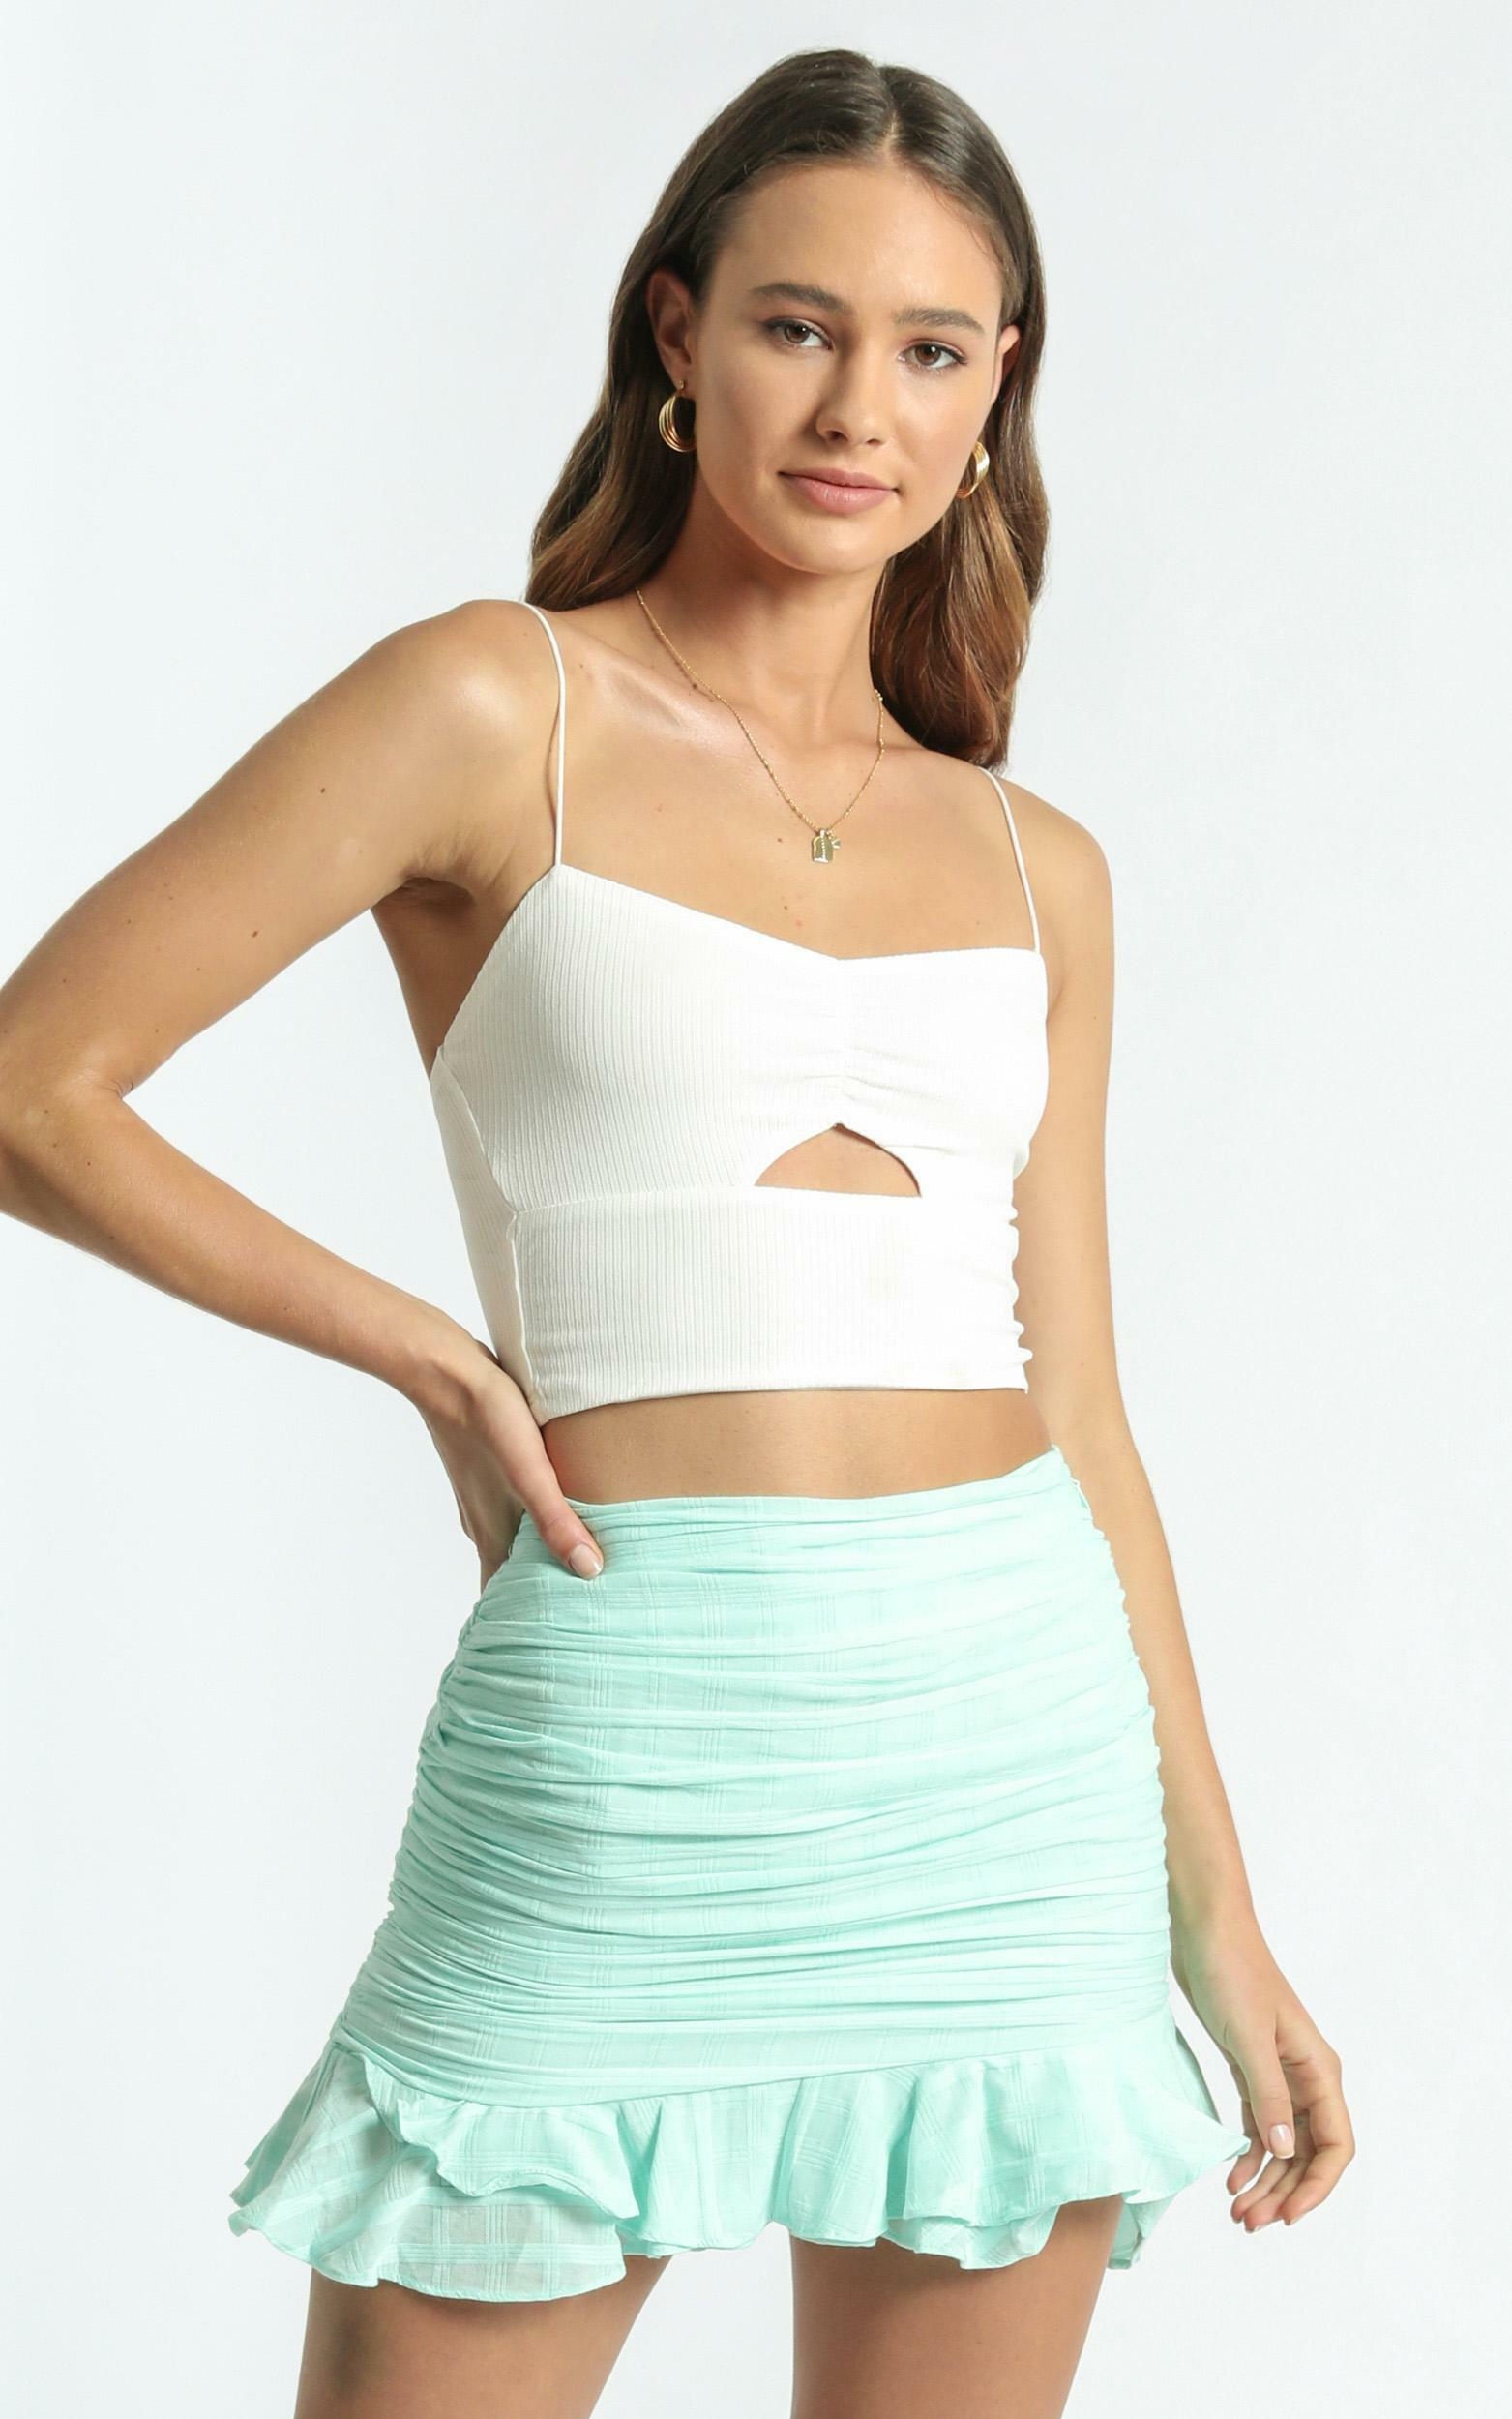 Bene Skirt in Mint - 6 (XS), GRN3, hi-res image number null